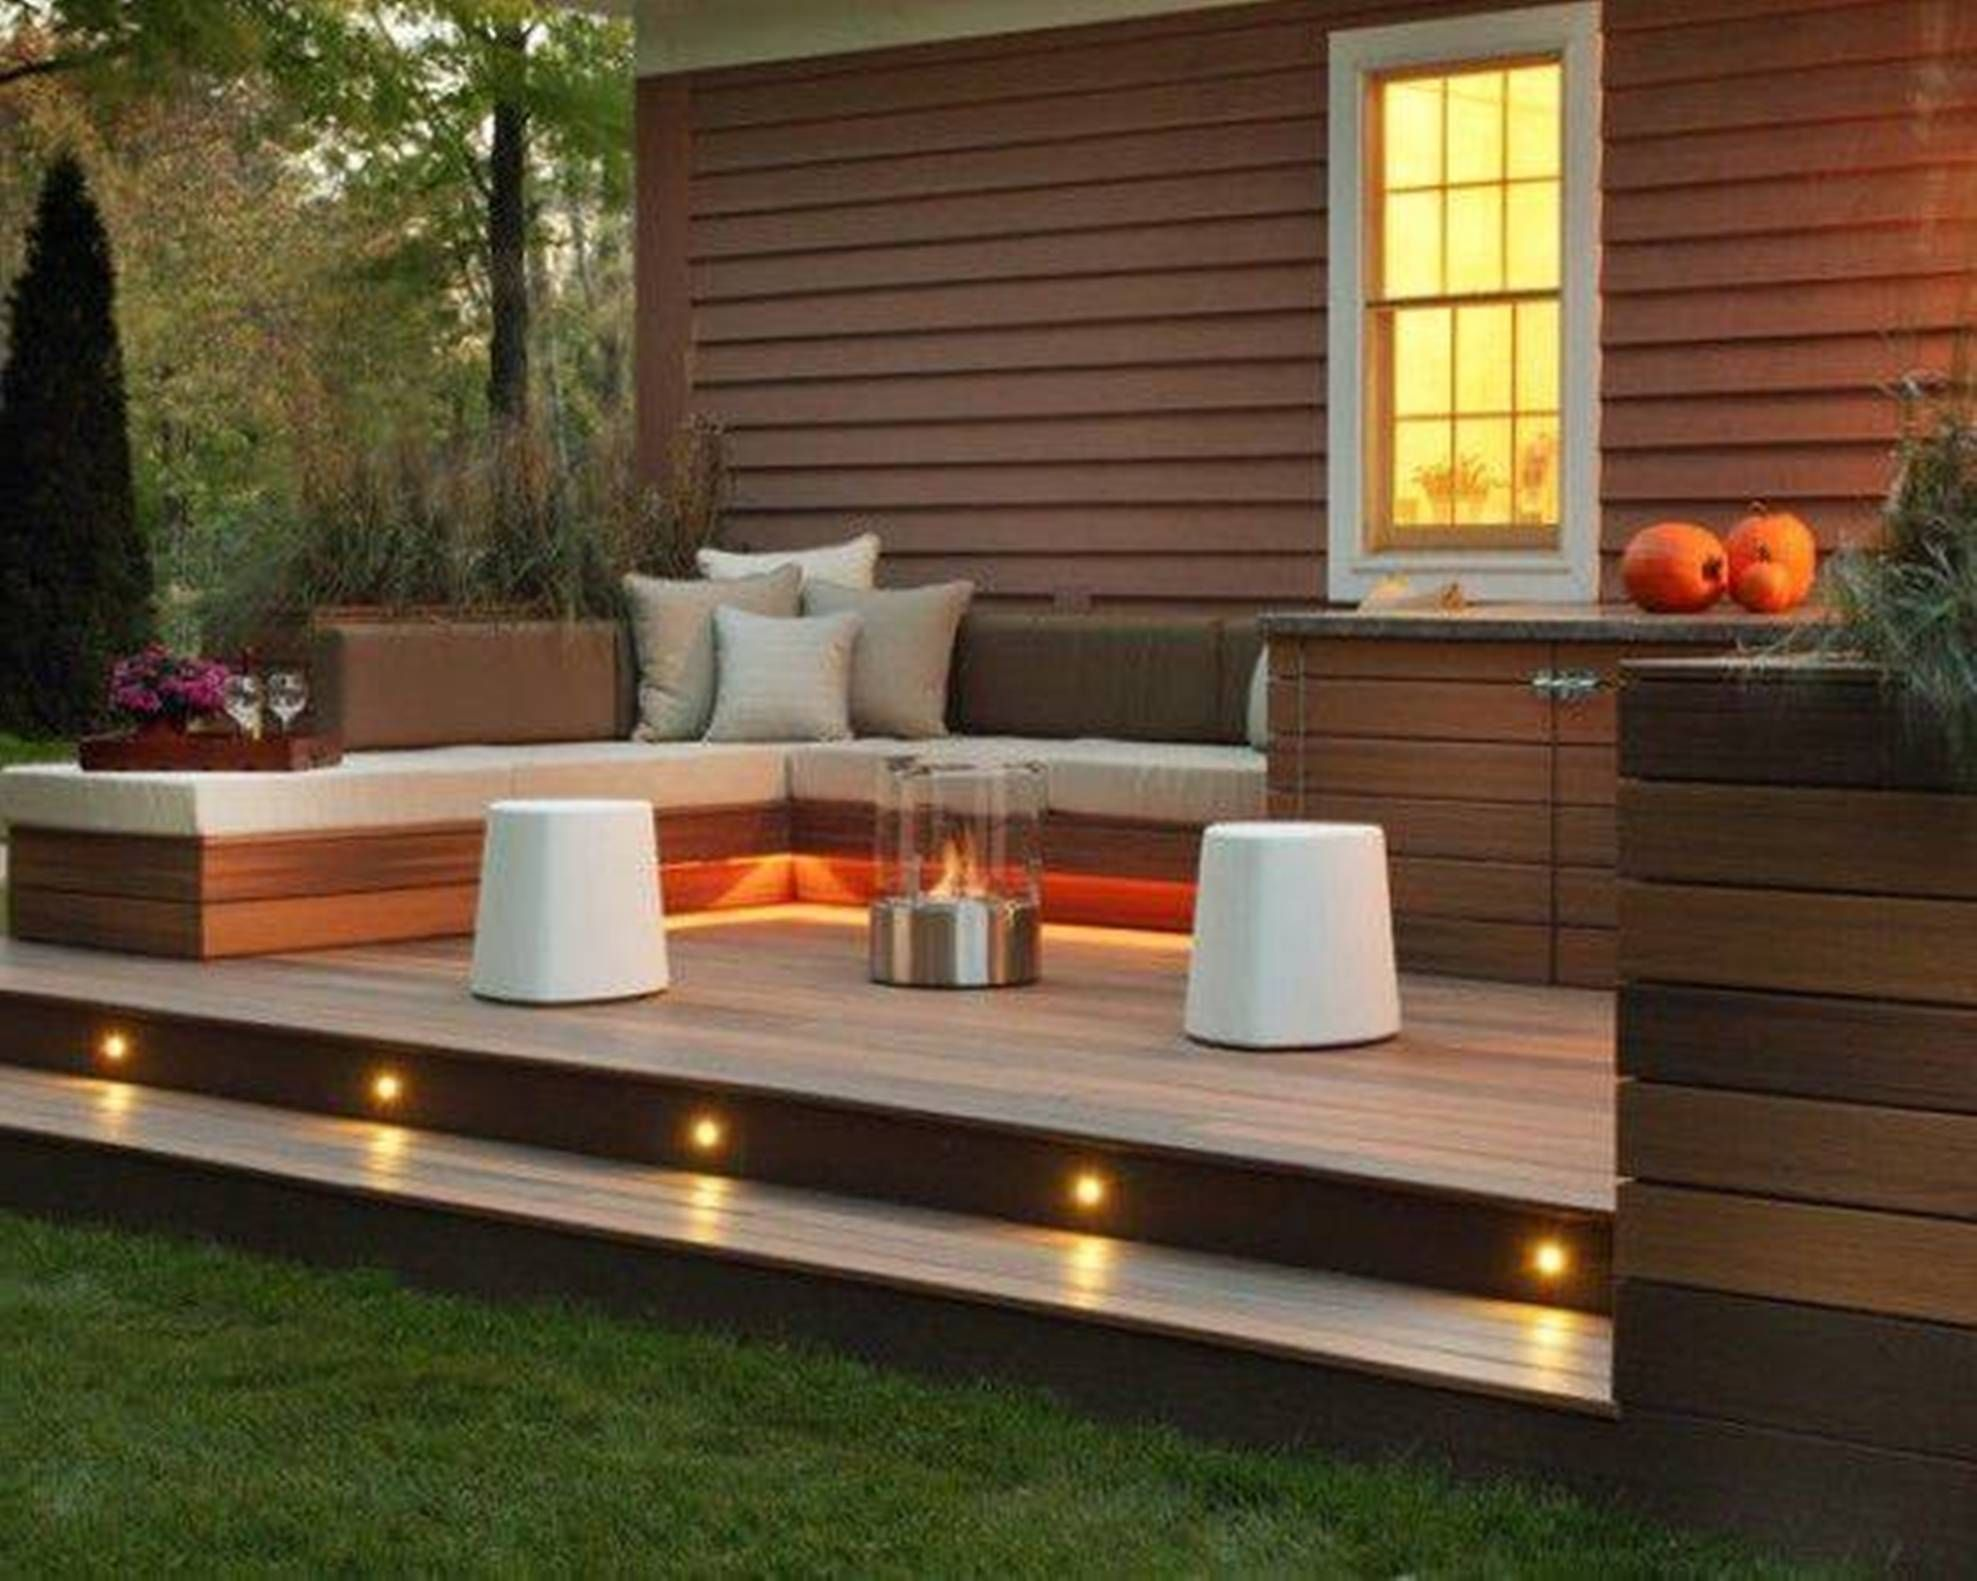 15 Irreplaceable Deck Lighting Ideas That Will Make Your